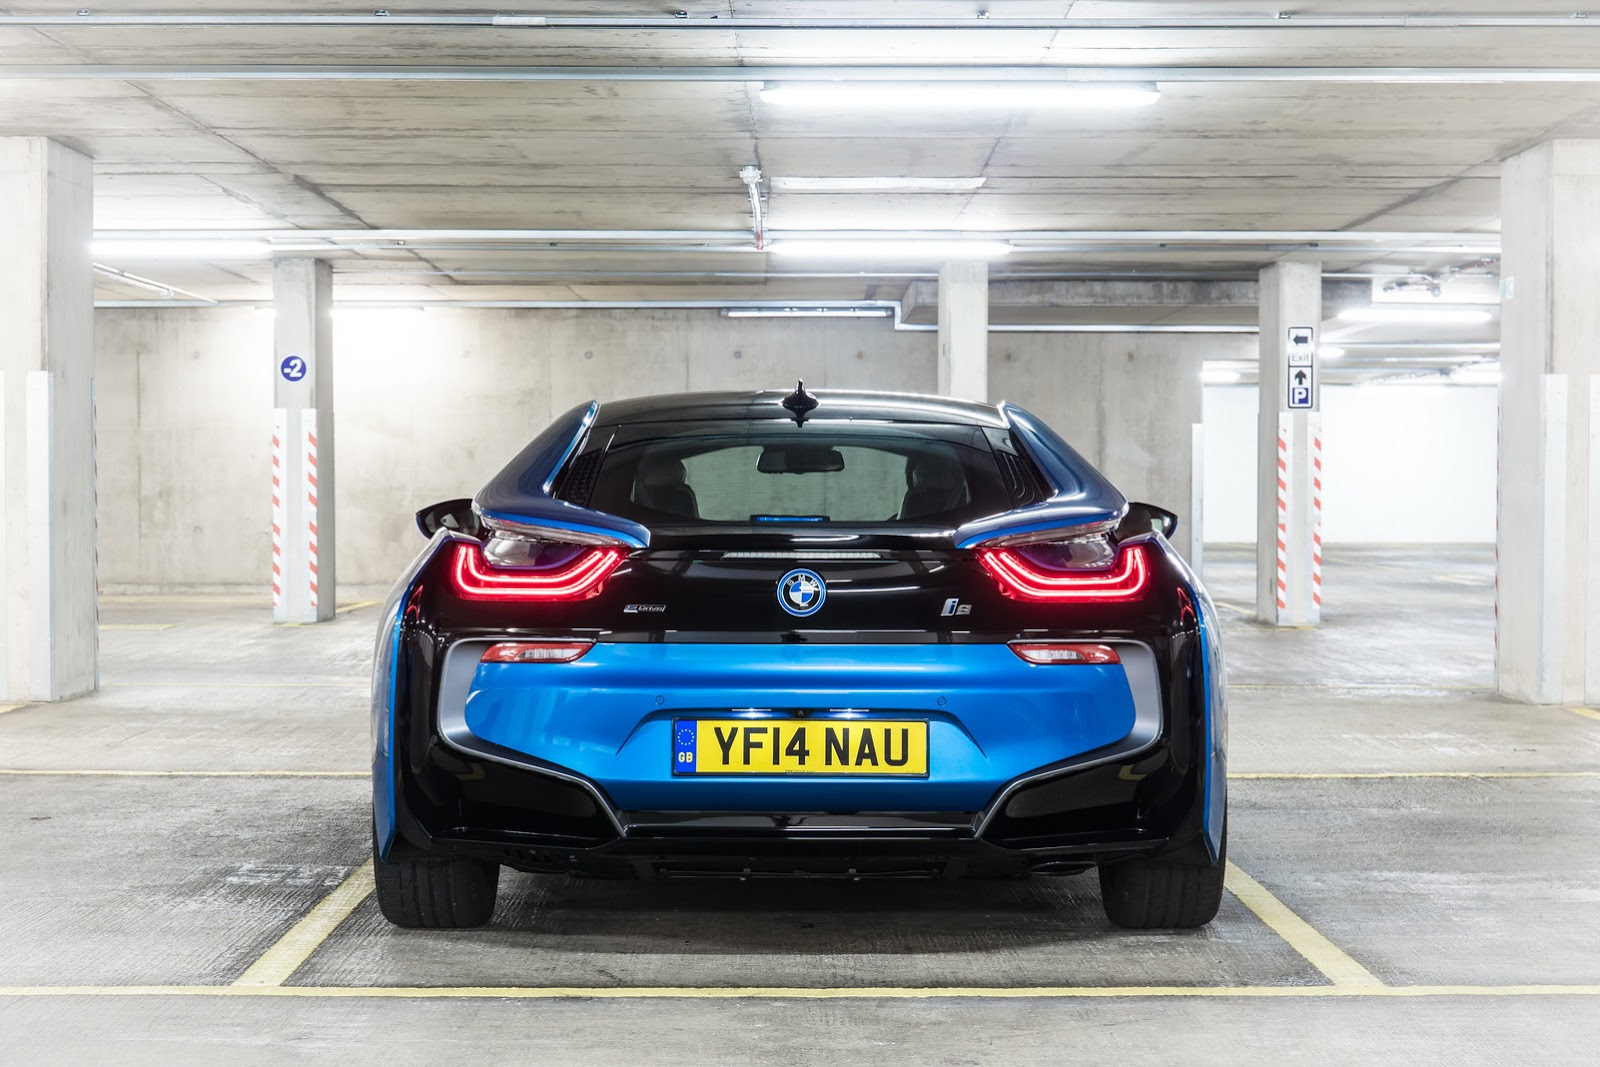 Beautiful Backside of the new BMW i8